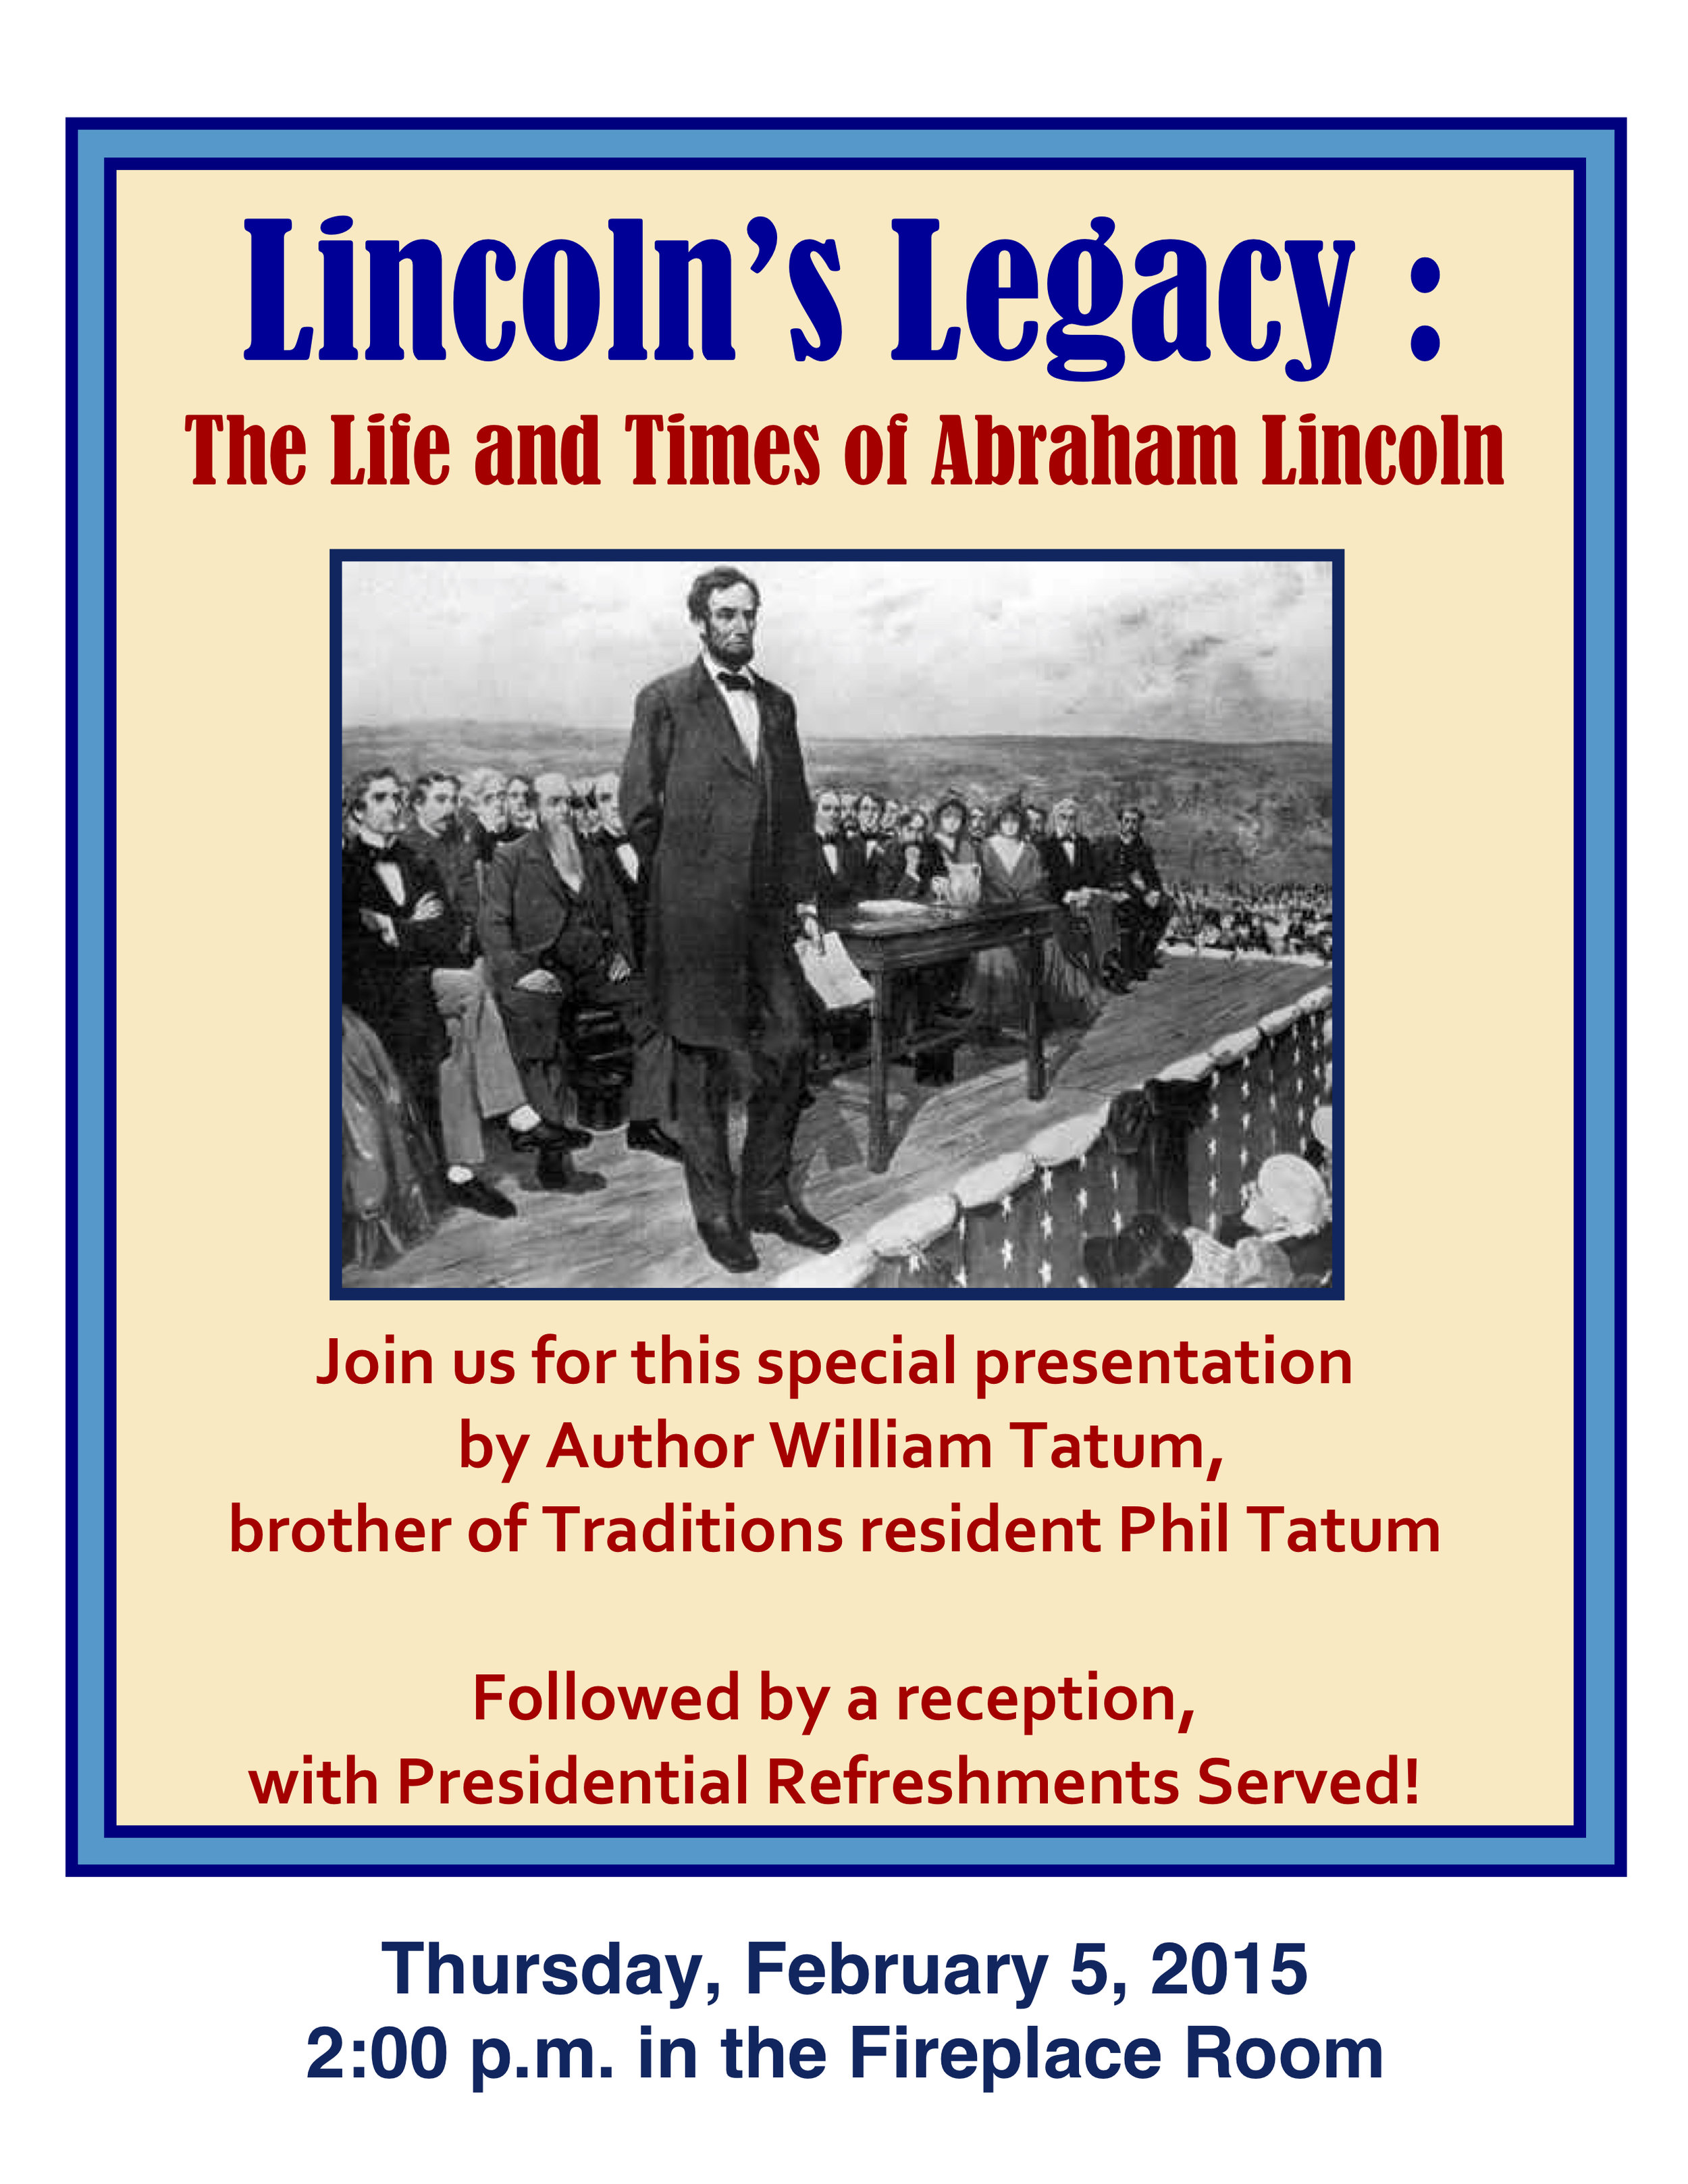 SIGN - LINCOLN'S LEGACY.jpg